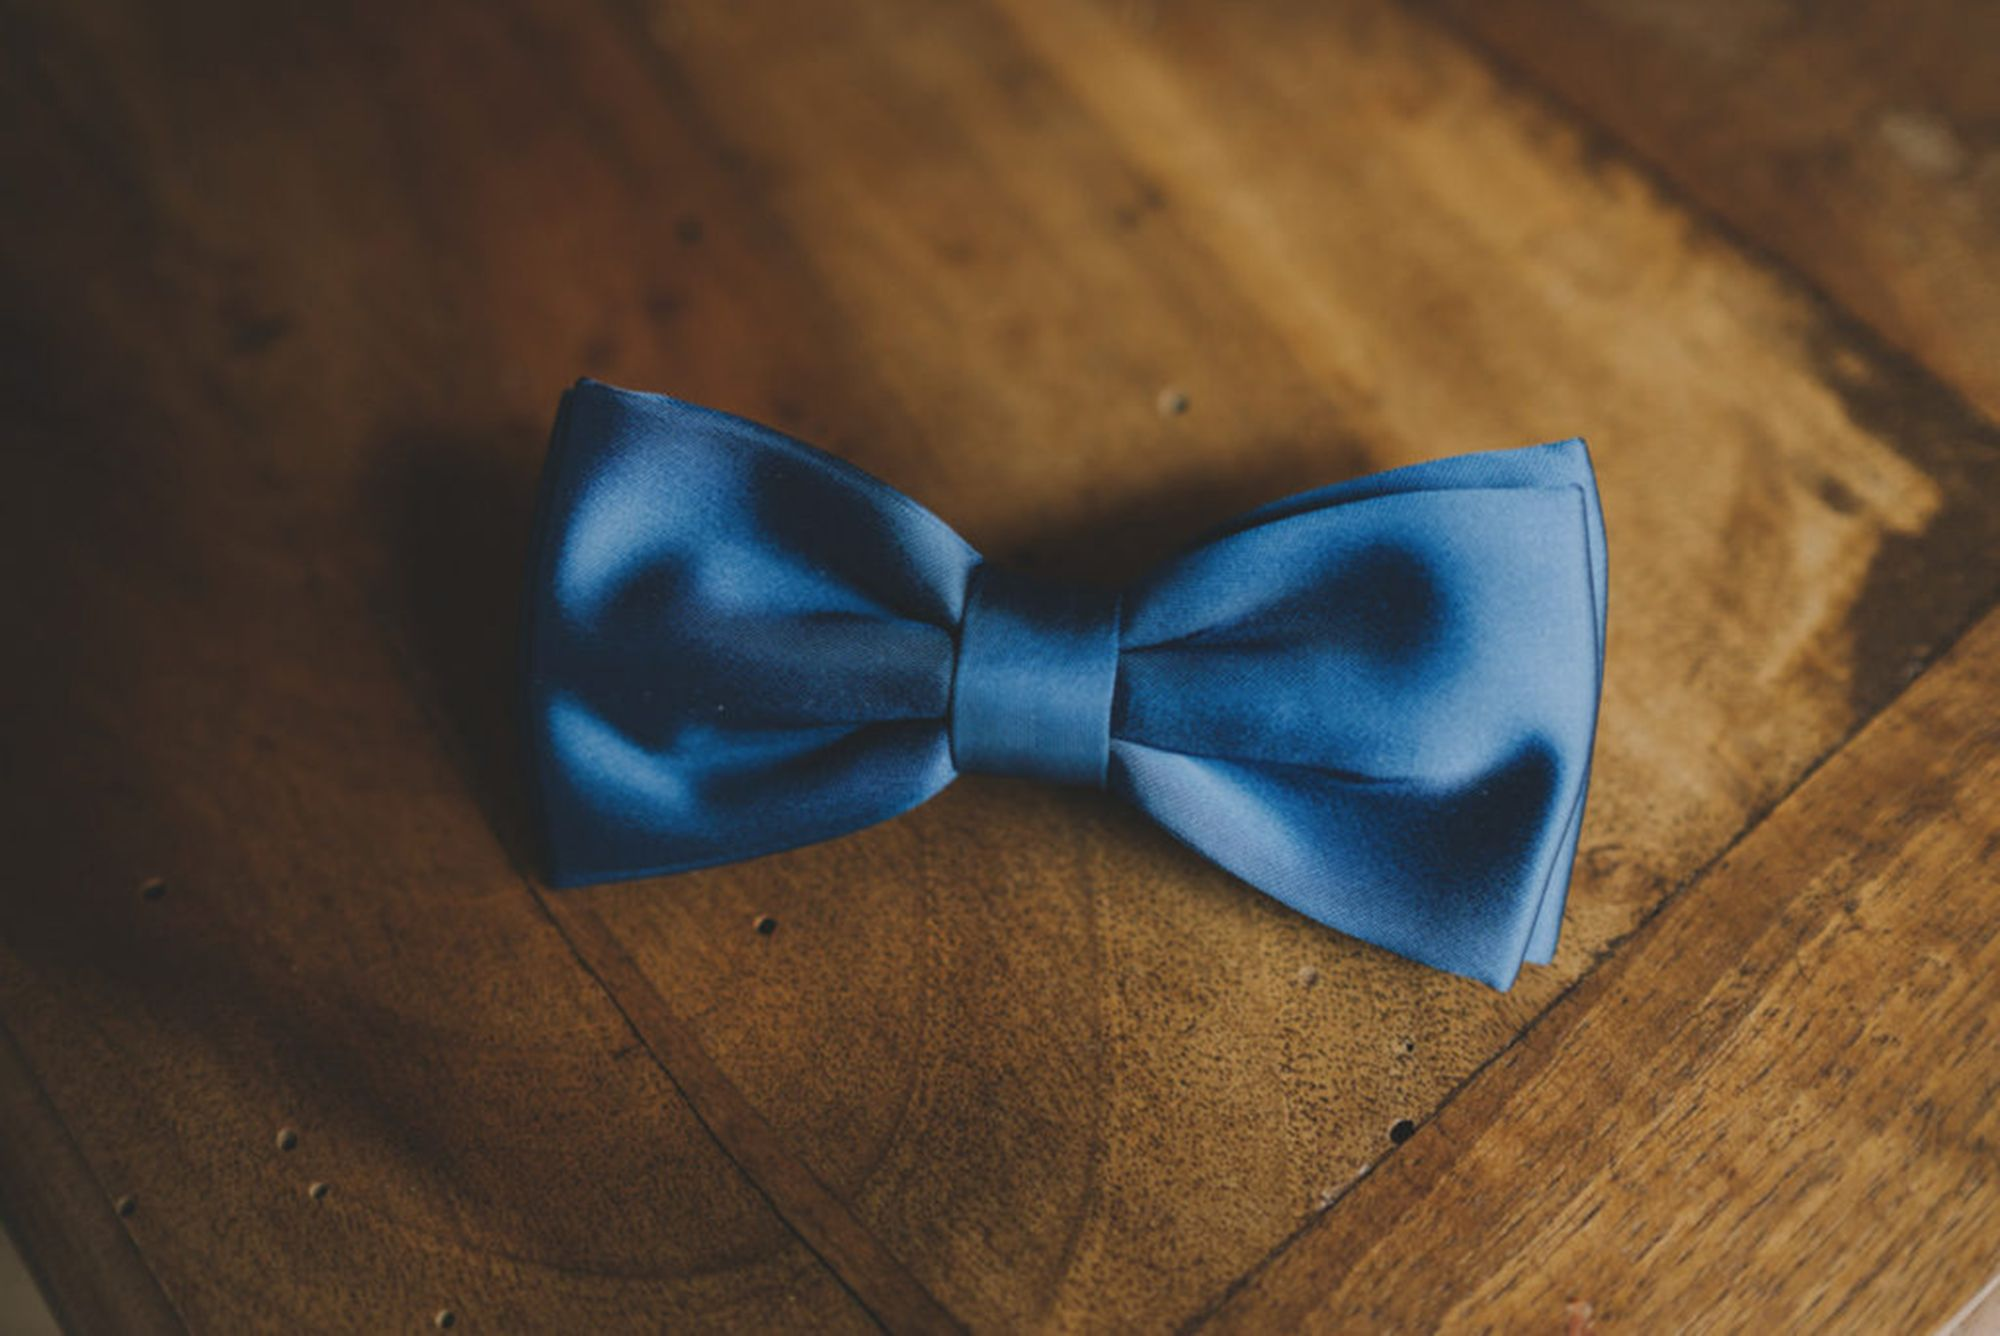 Classic Blue Bow tie Scocca Papillon. Color of the Year 2020 Pantone. Shop: www.scoccapapillon.etsy.com. Ph.www.matrimoniallitaliana.com - #Pantone2020 #ClassicBlue #Bowtie #ScoccaPapillon #ColoroftheYear2020 #pantone #pantoneclassicblue #color2020 #menswear #lifestyle #lifestyle2020 #trends2020 #colortrend2020 #colortrends2020 #colortrend #etsy #mensfahion #mensstyle #madeinitaly #moodboard #moodboardwedding #moodboard2020 #colorinspiration2020 #colorinspiration #classicbluewedding #wedding2020